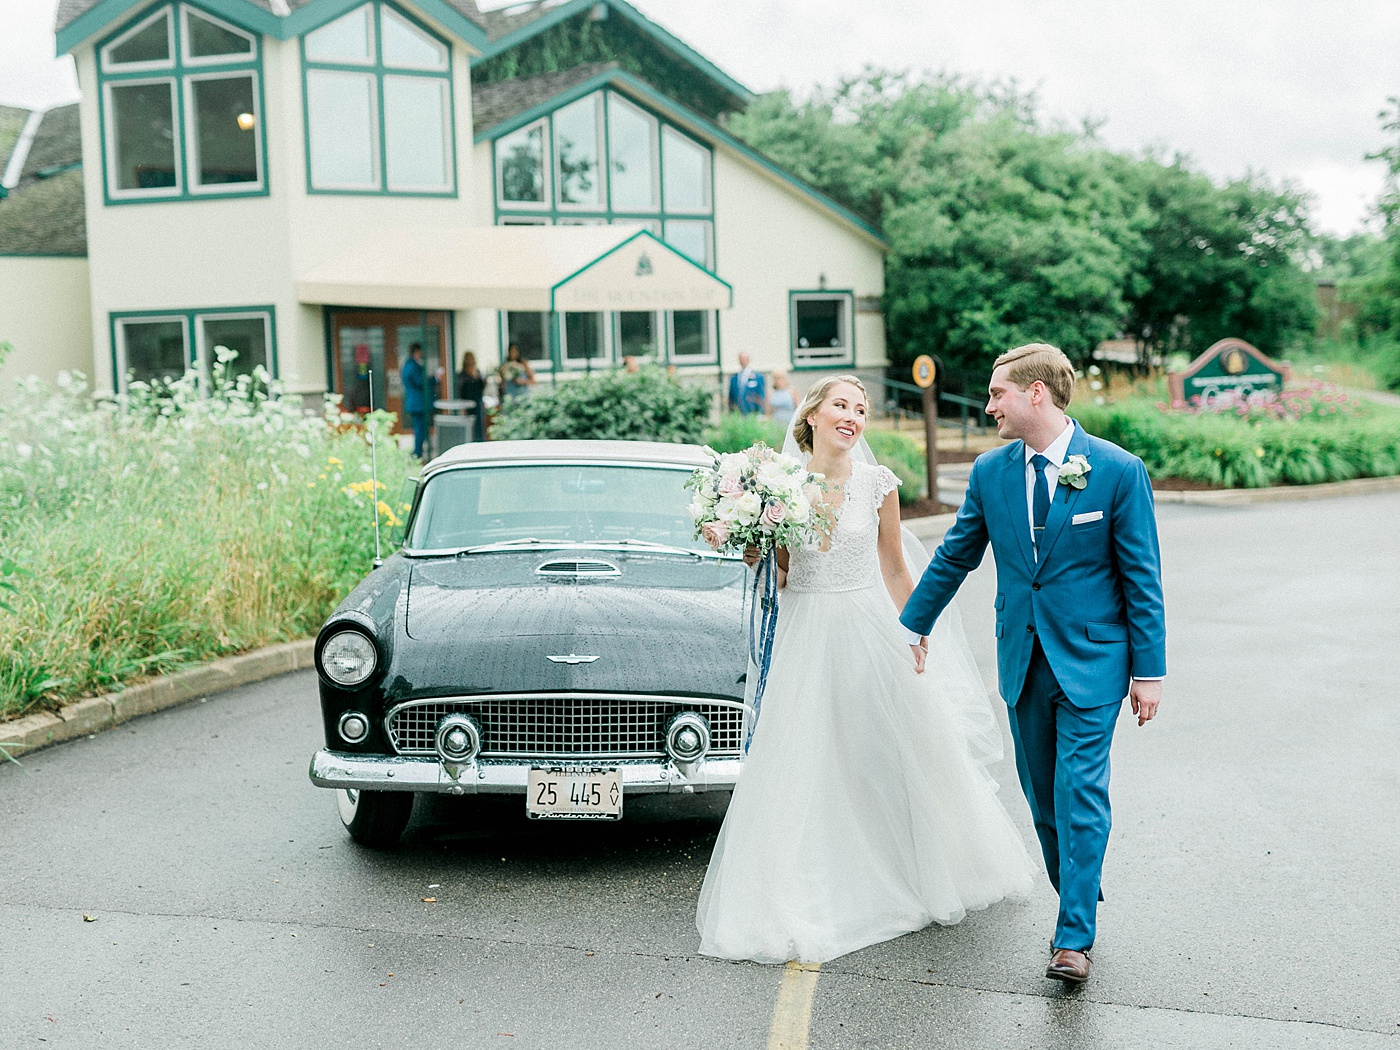 Wedding photographer in Madison, WI